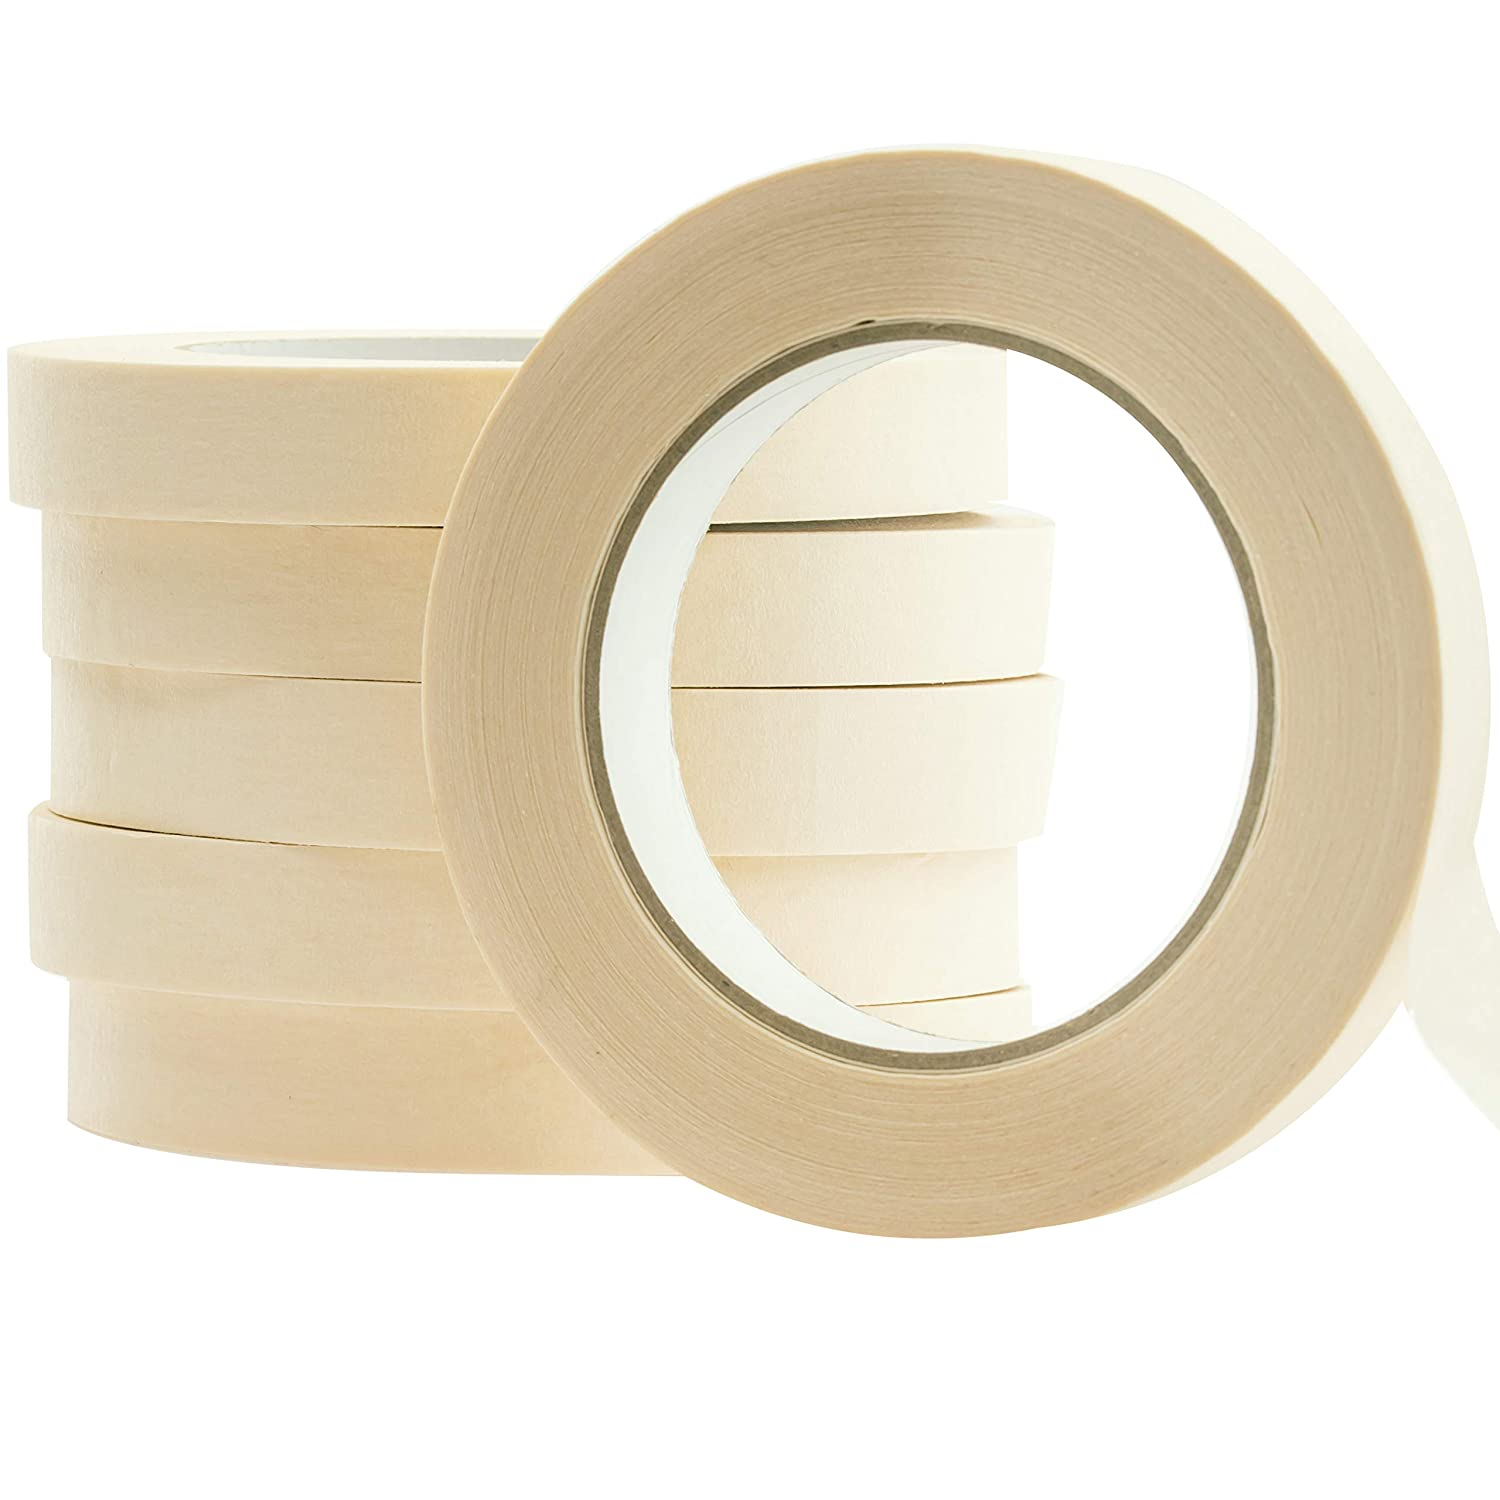 Drip-Free Painting with Wide Crepe Paper Rolls Clean No-Residue 1 Inch Pro-Grade Removable Painters Tape Great for Home 60 Yard Masking Tape 1 Pk Easy-Tear Office or Commercial Contractor